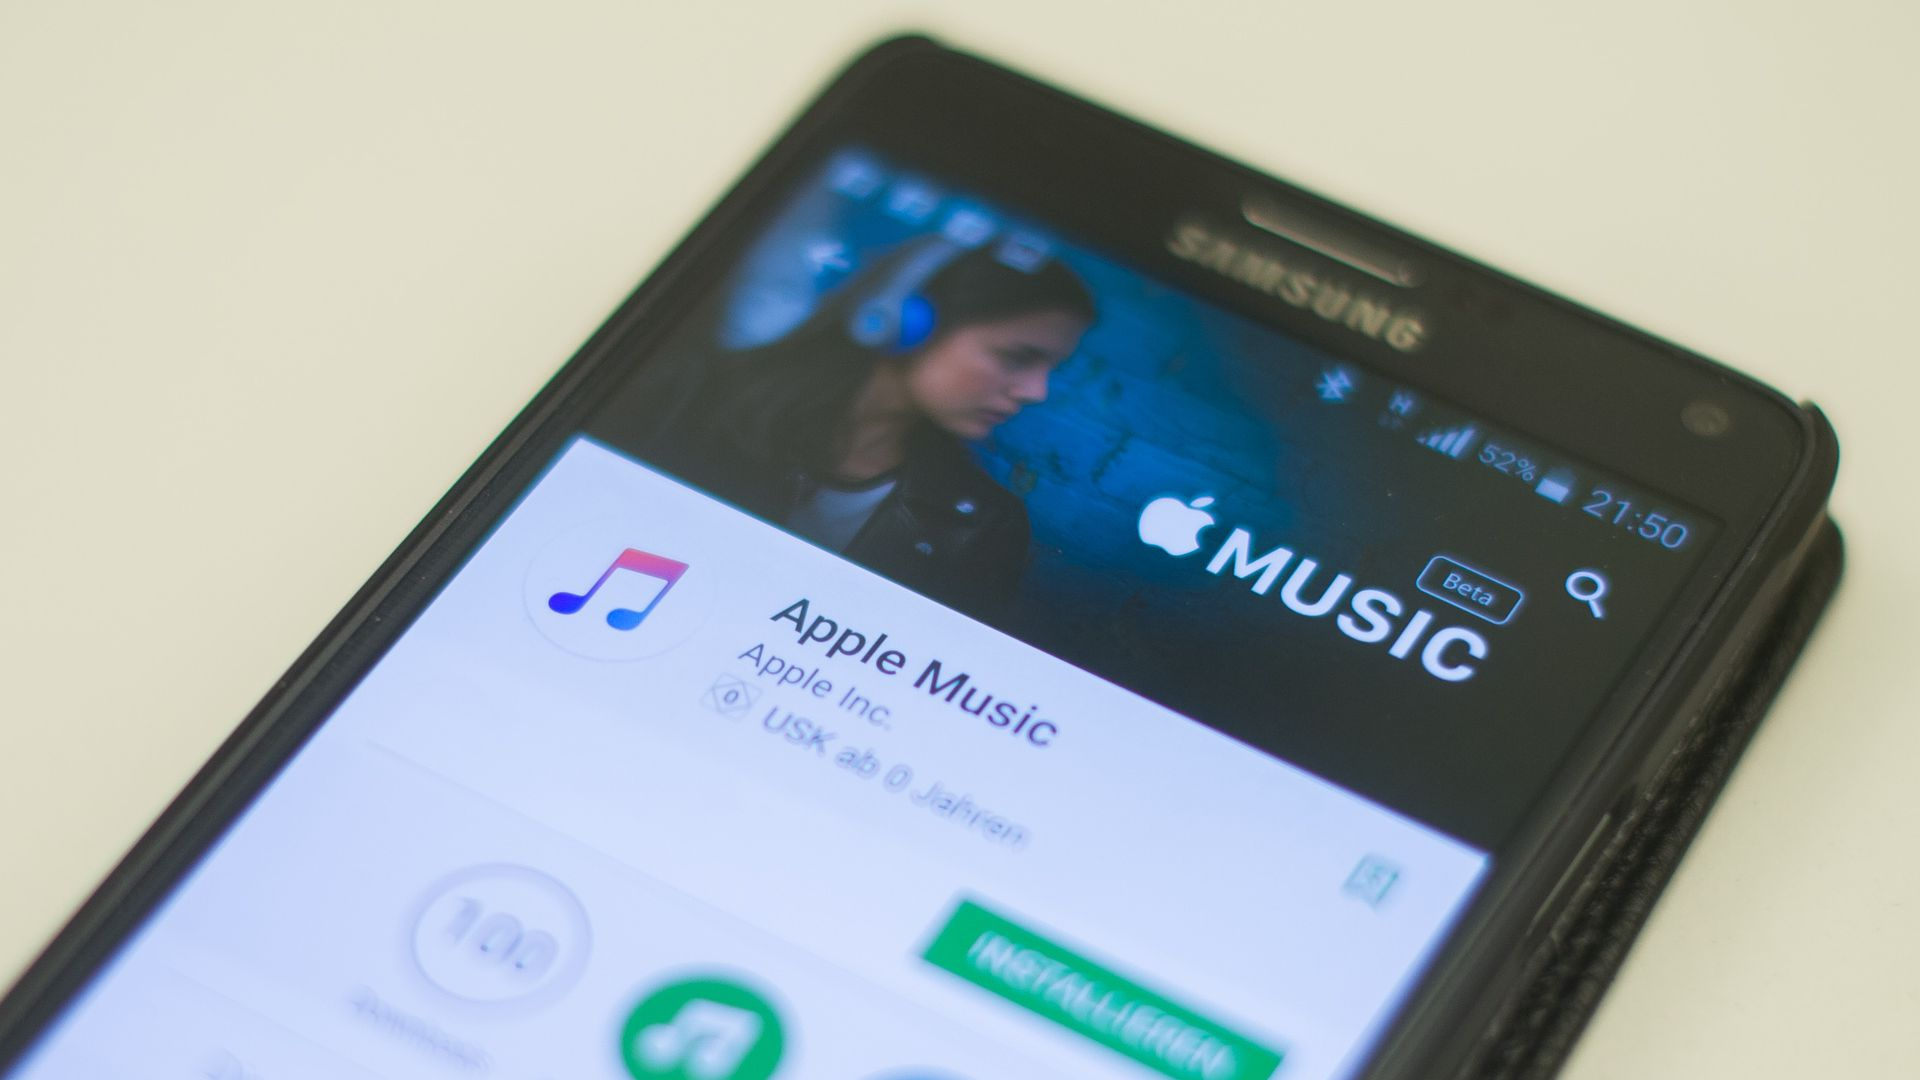 Photo of Apple Music app on Samsung phone.